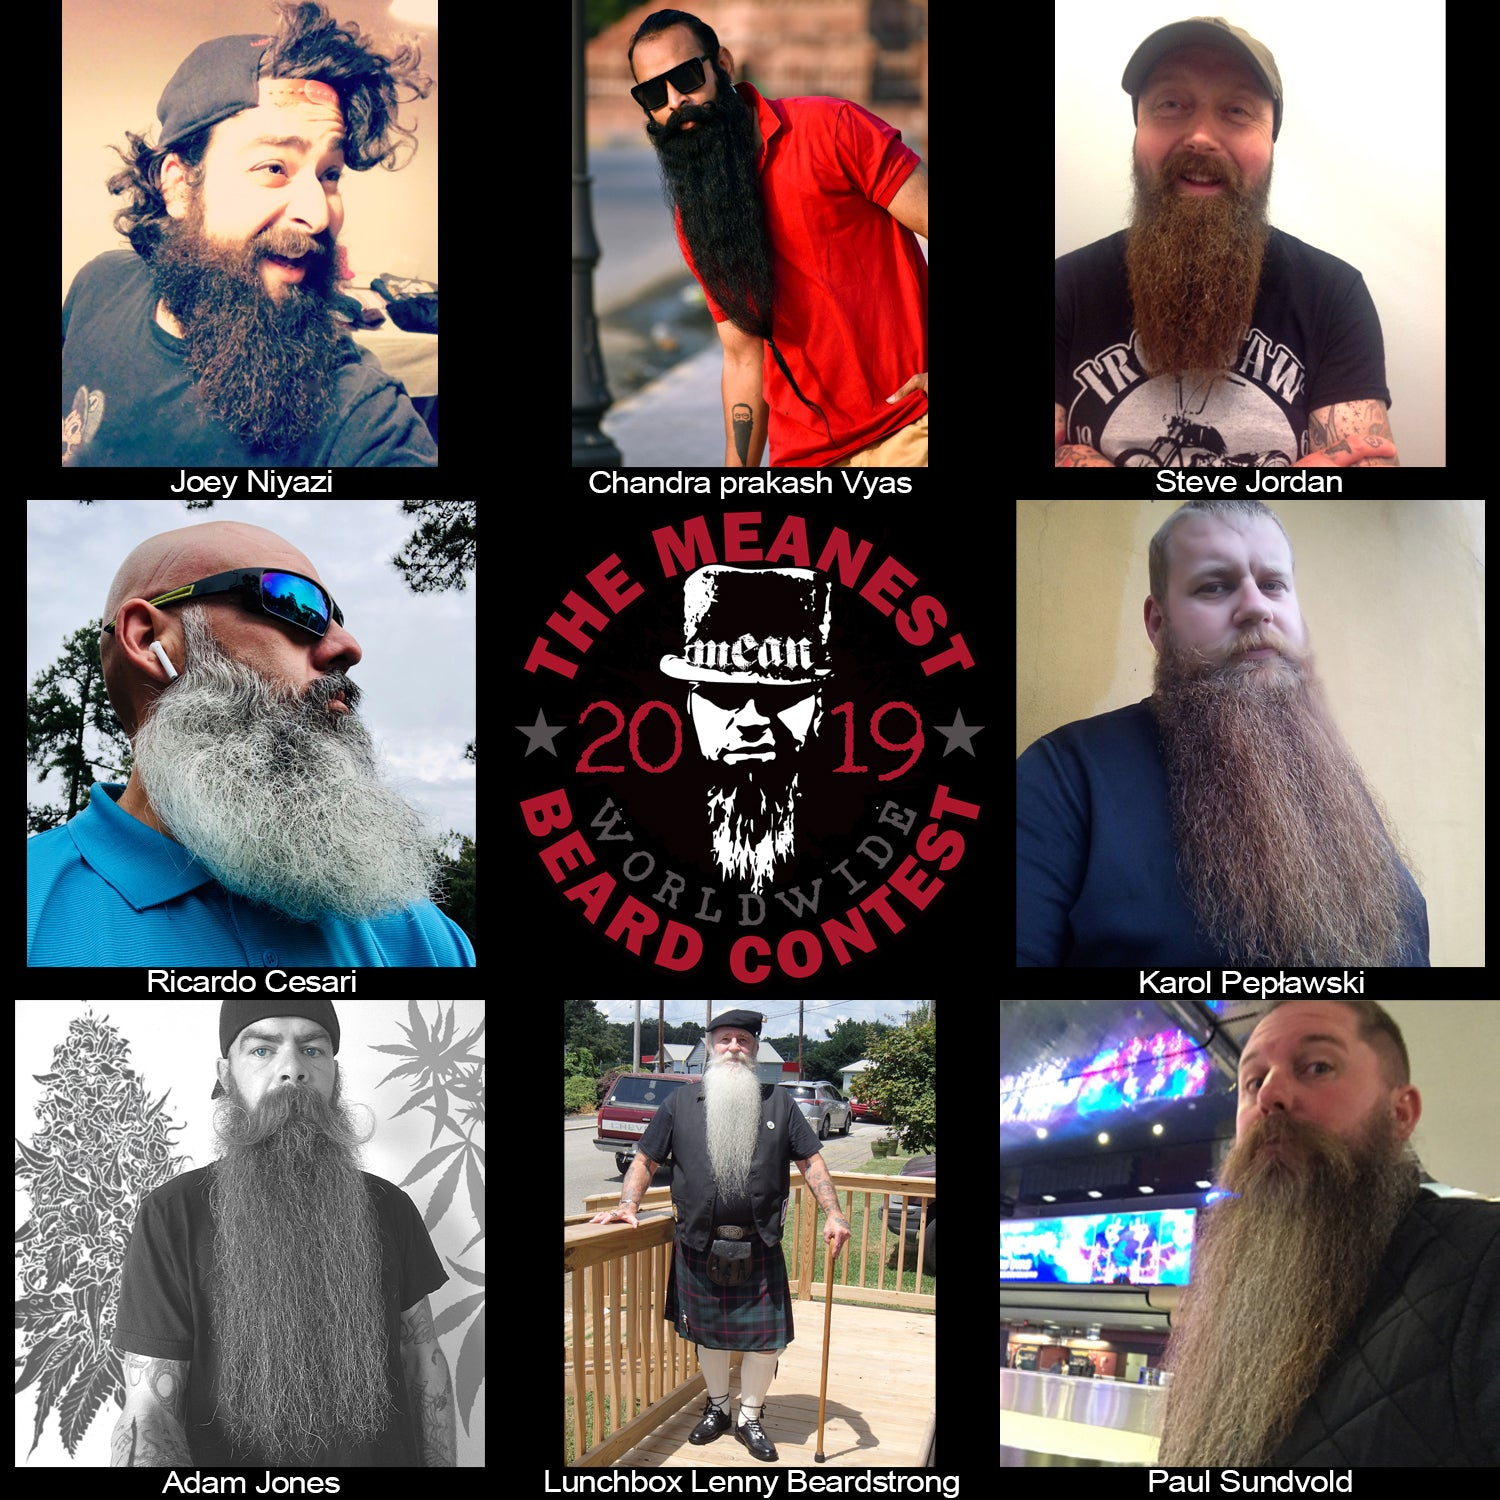 Contestants 9 to16 in the 2019 MEANest BEARD Worldwide Contest